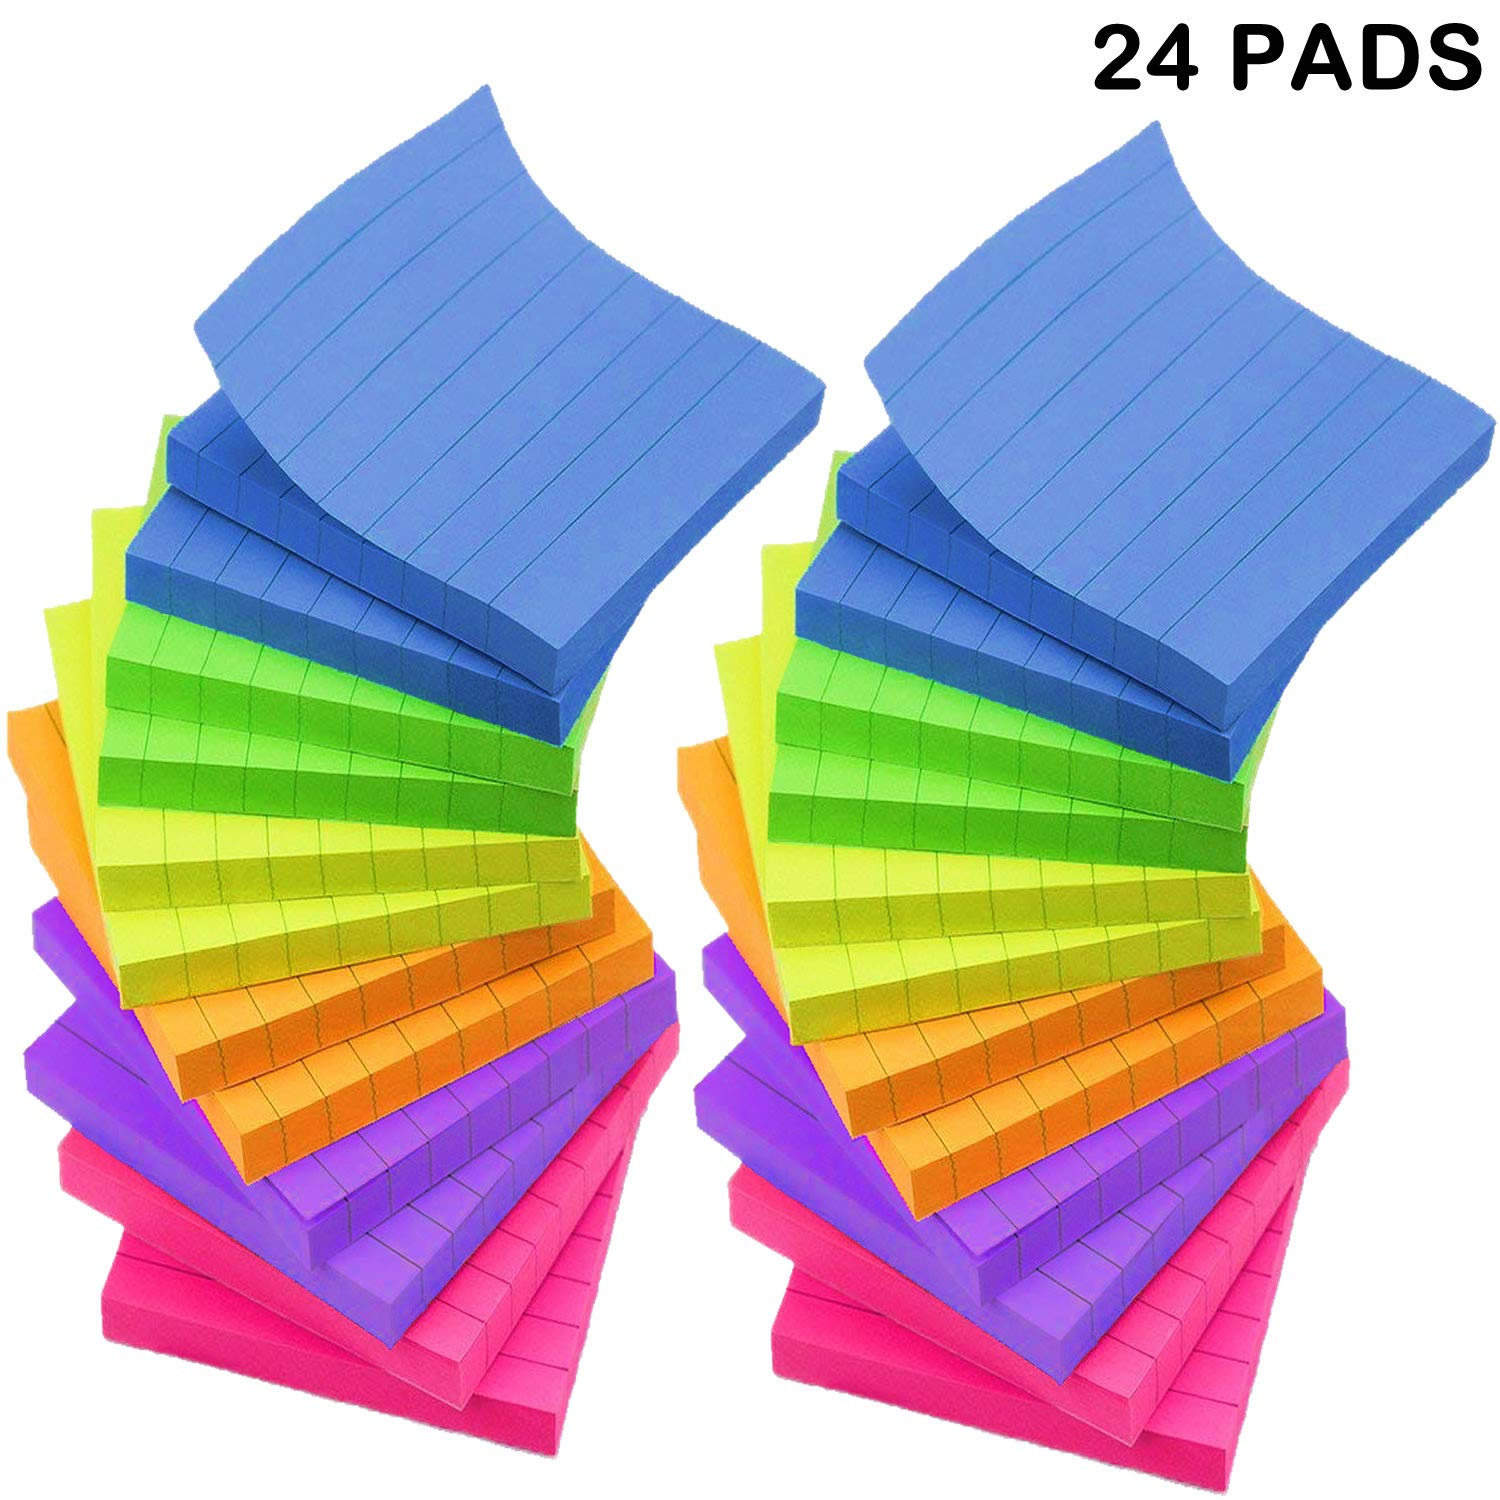 Lined Sticky Notes 3x3 Inches - 6 Bright Color Self-Stick Notes - 24 Pads/Pack, 70 Sheets/Pad